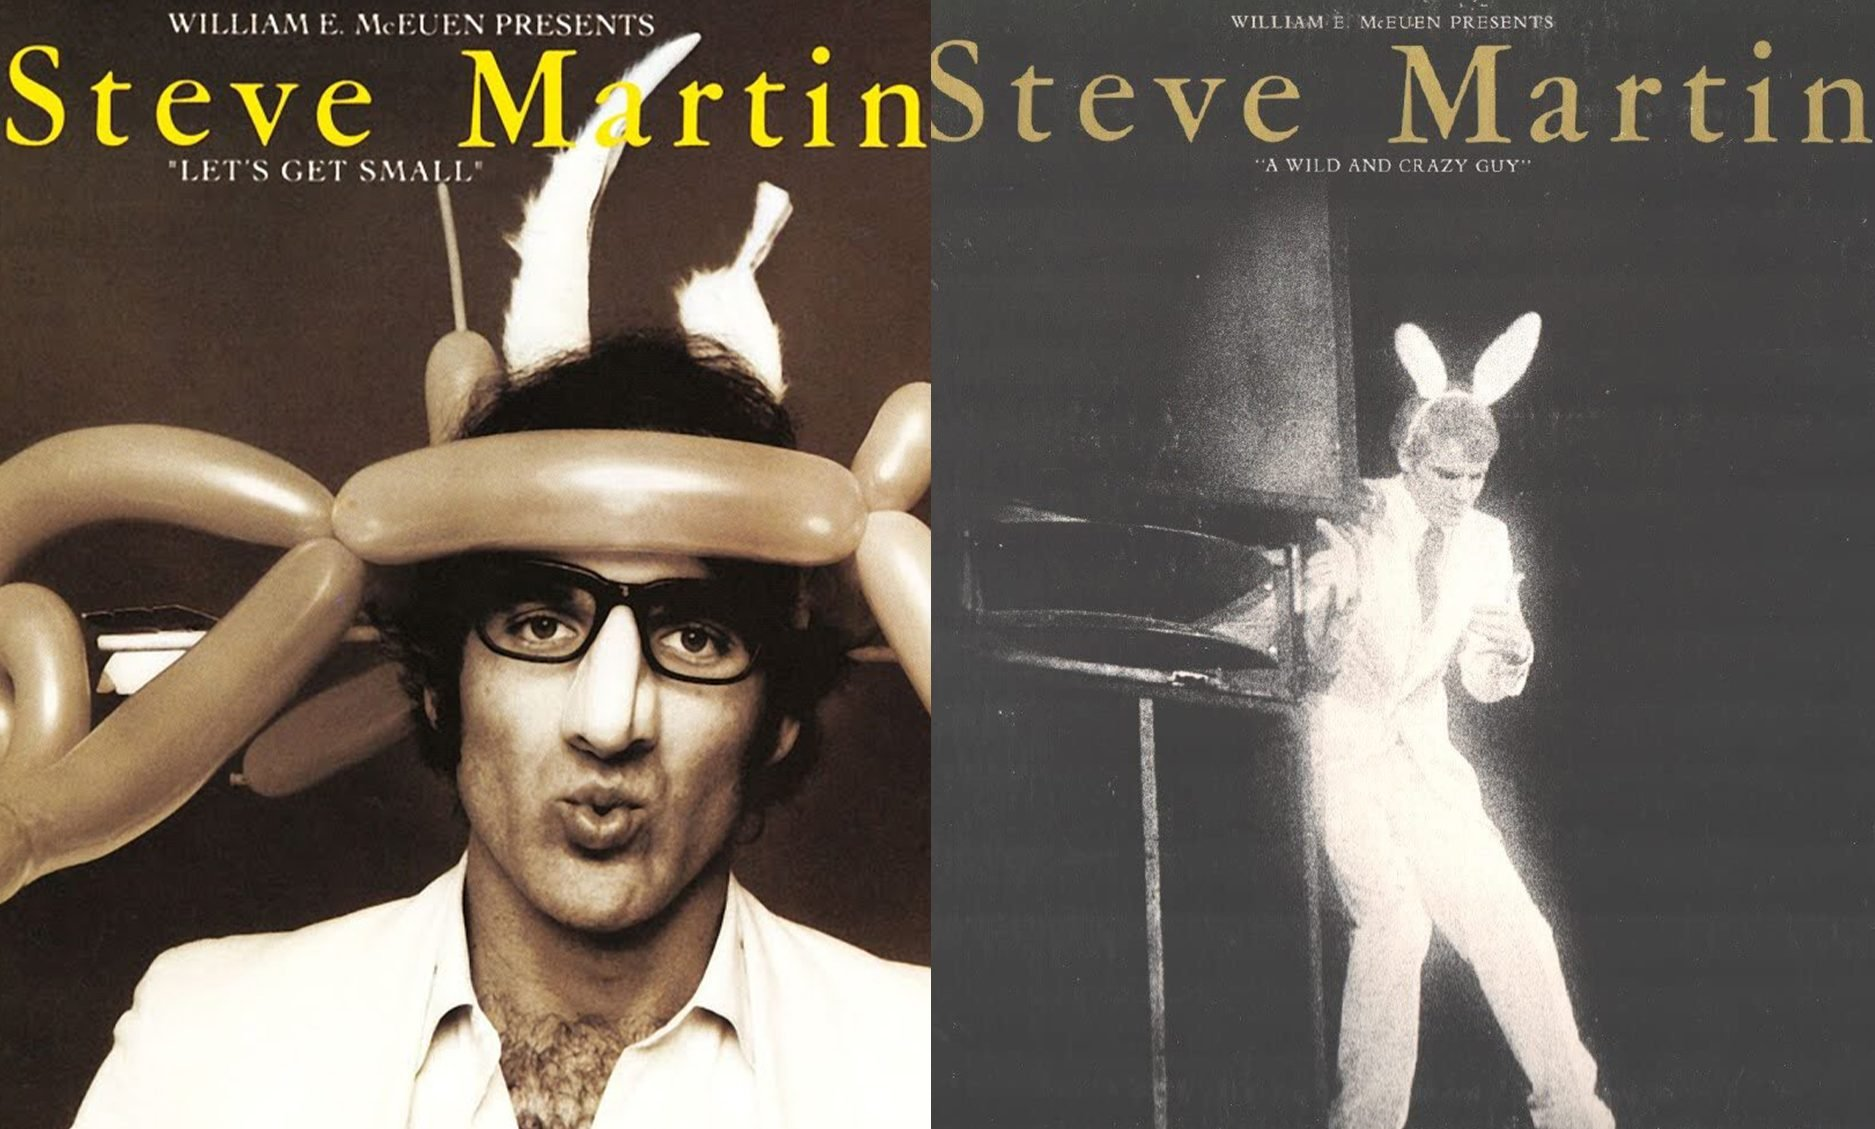 Steve Martin albums e1628858666480 20 Things You Didn't Know About Steve Martin